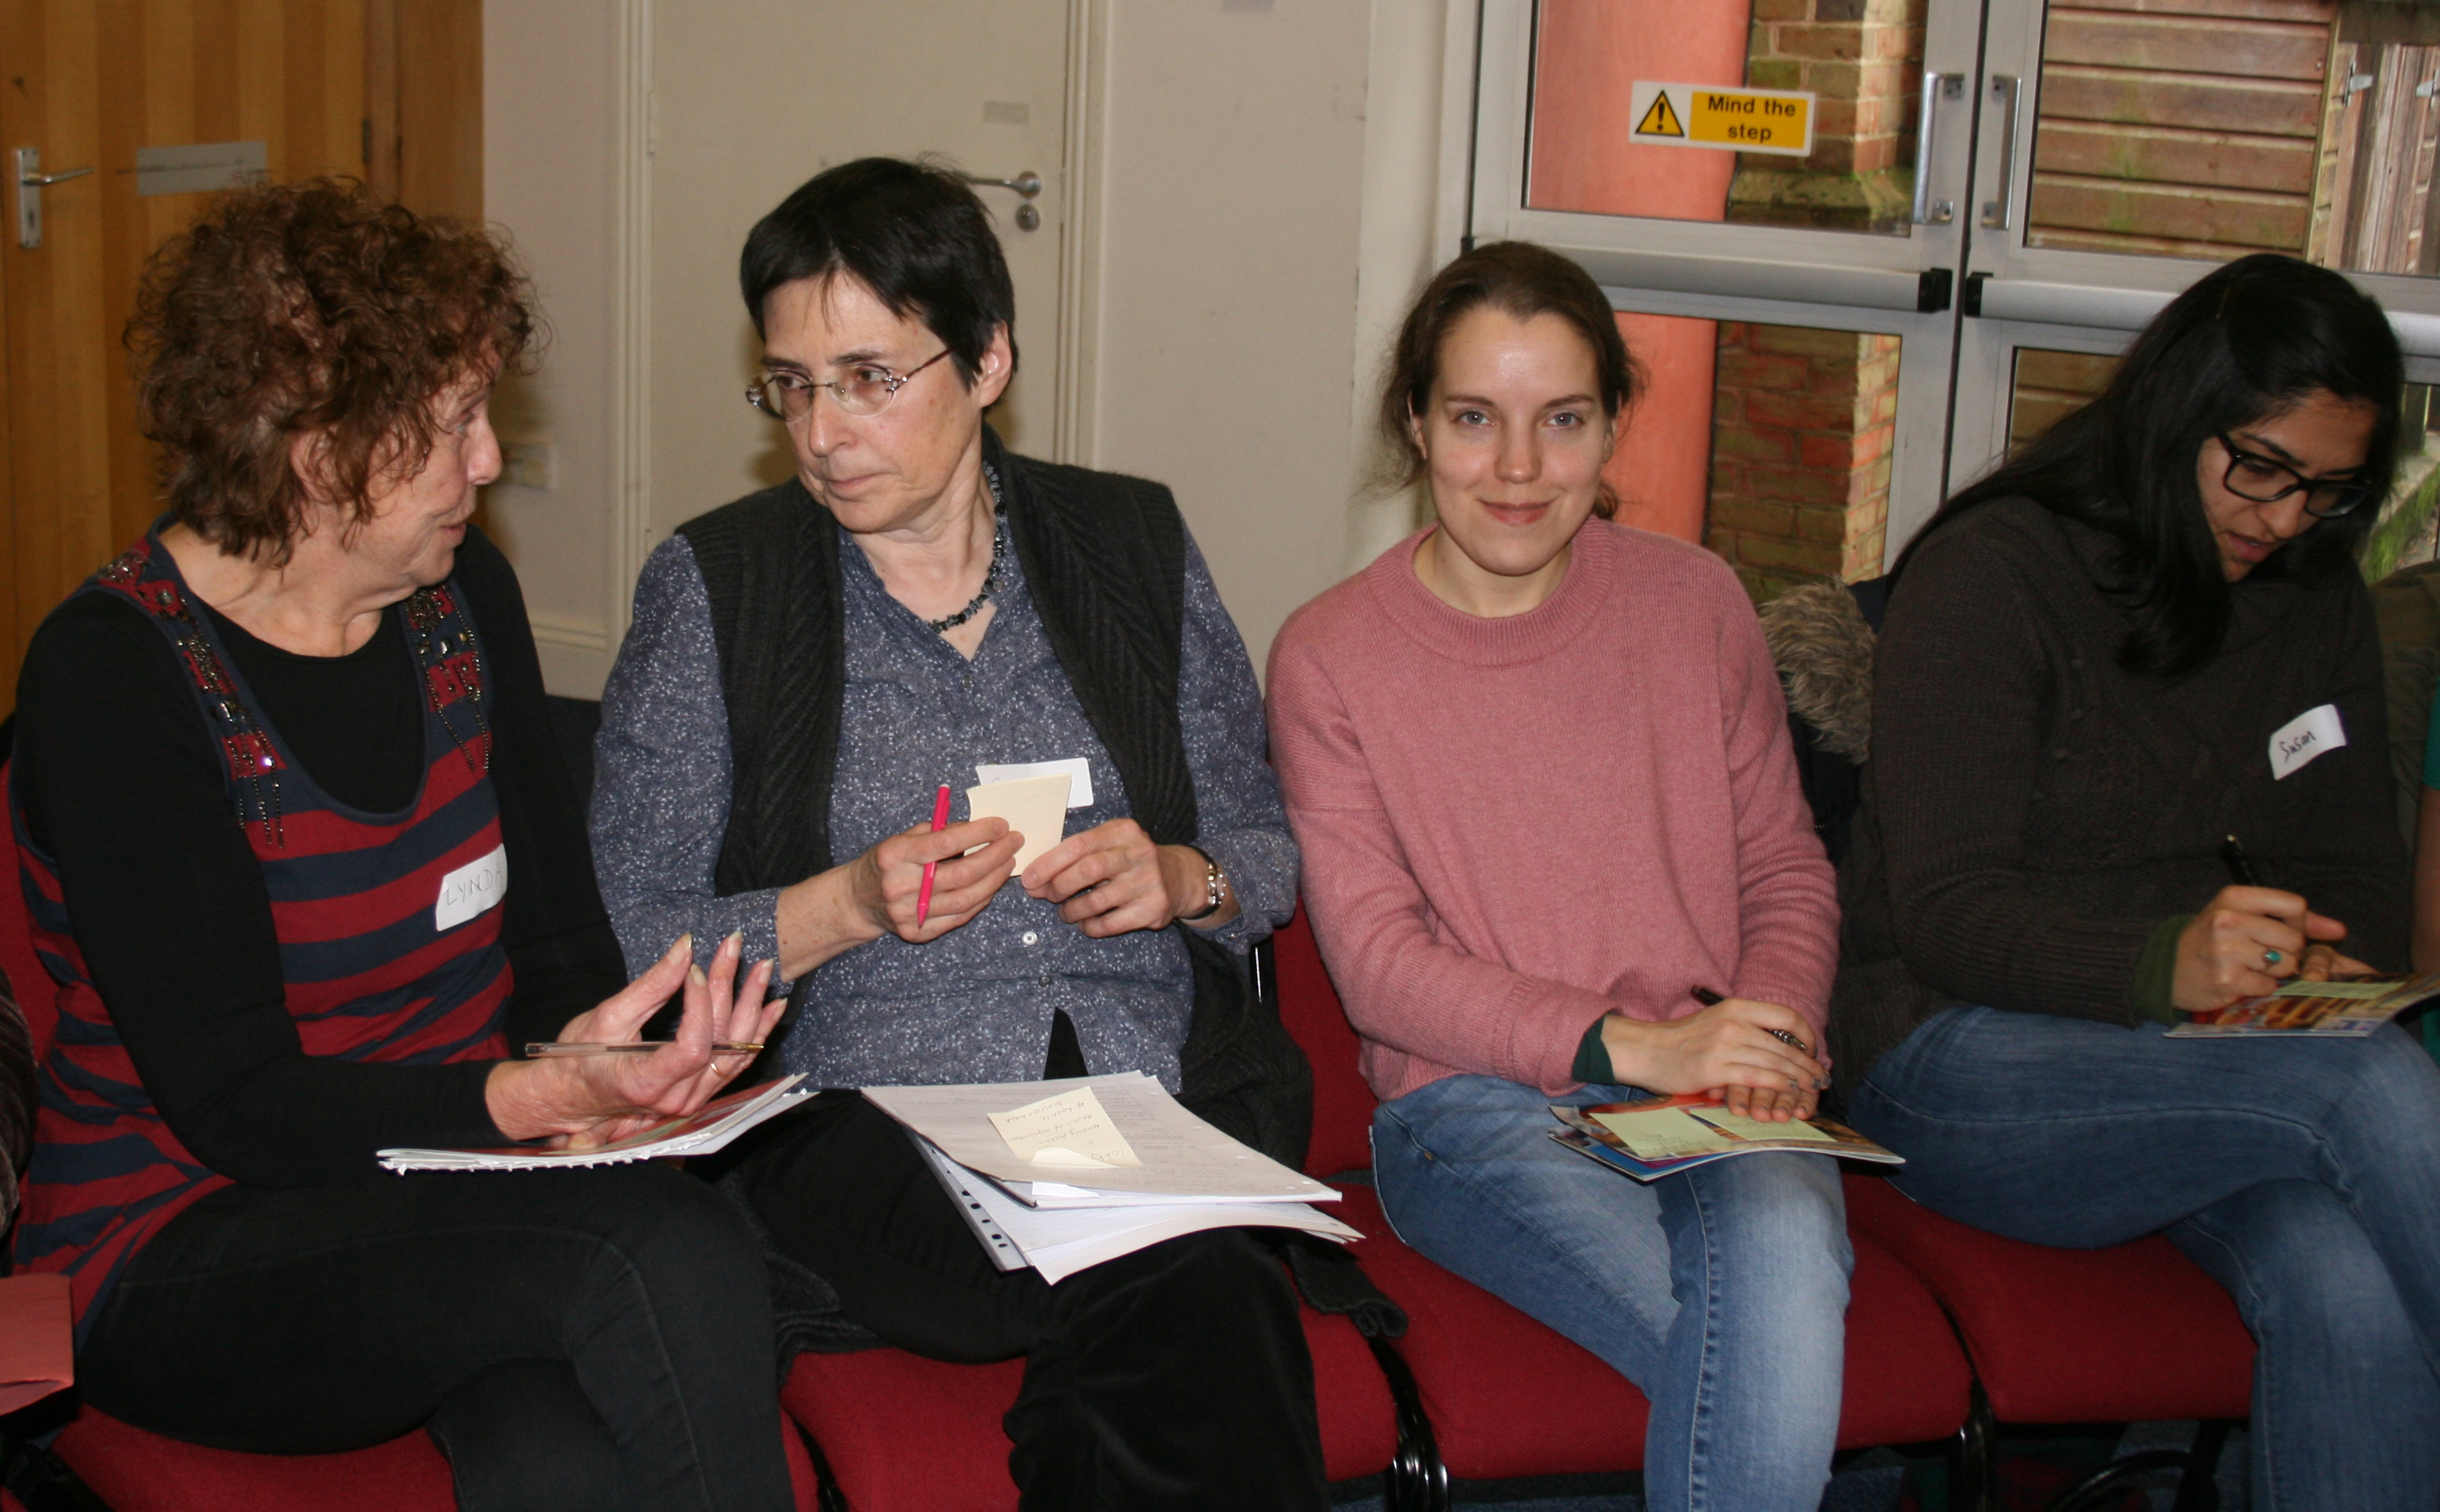 New members attend a training session